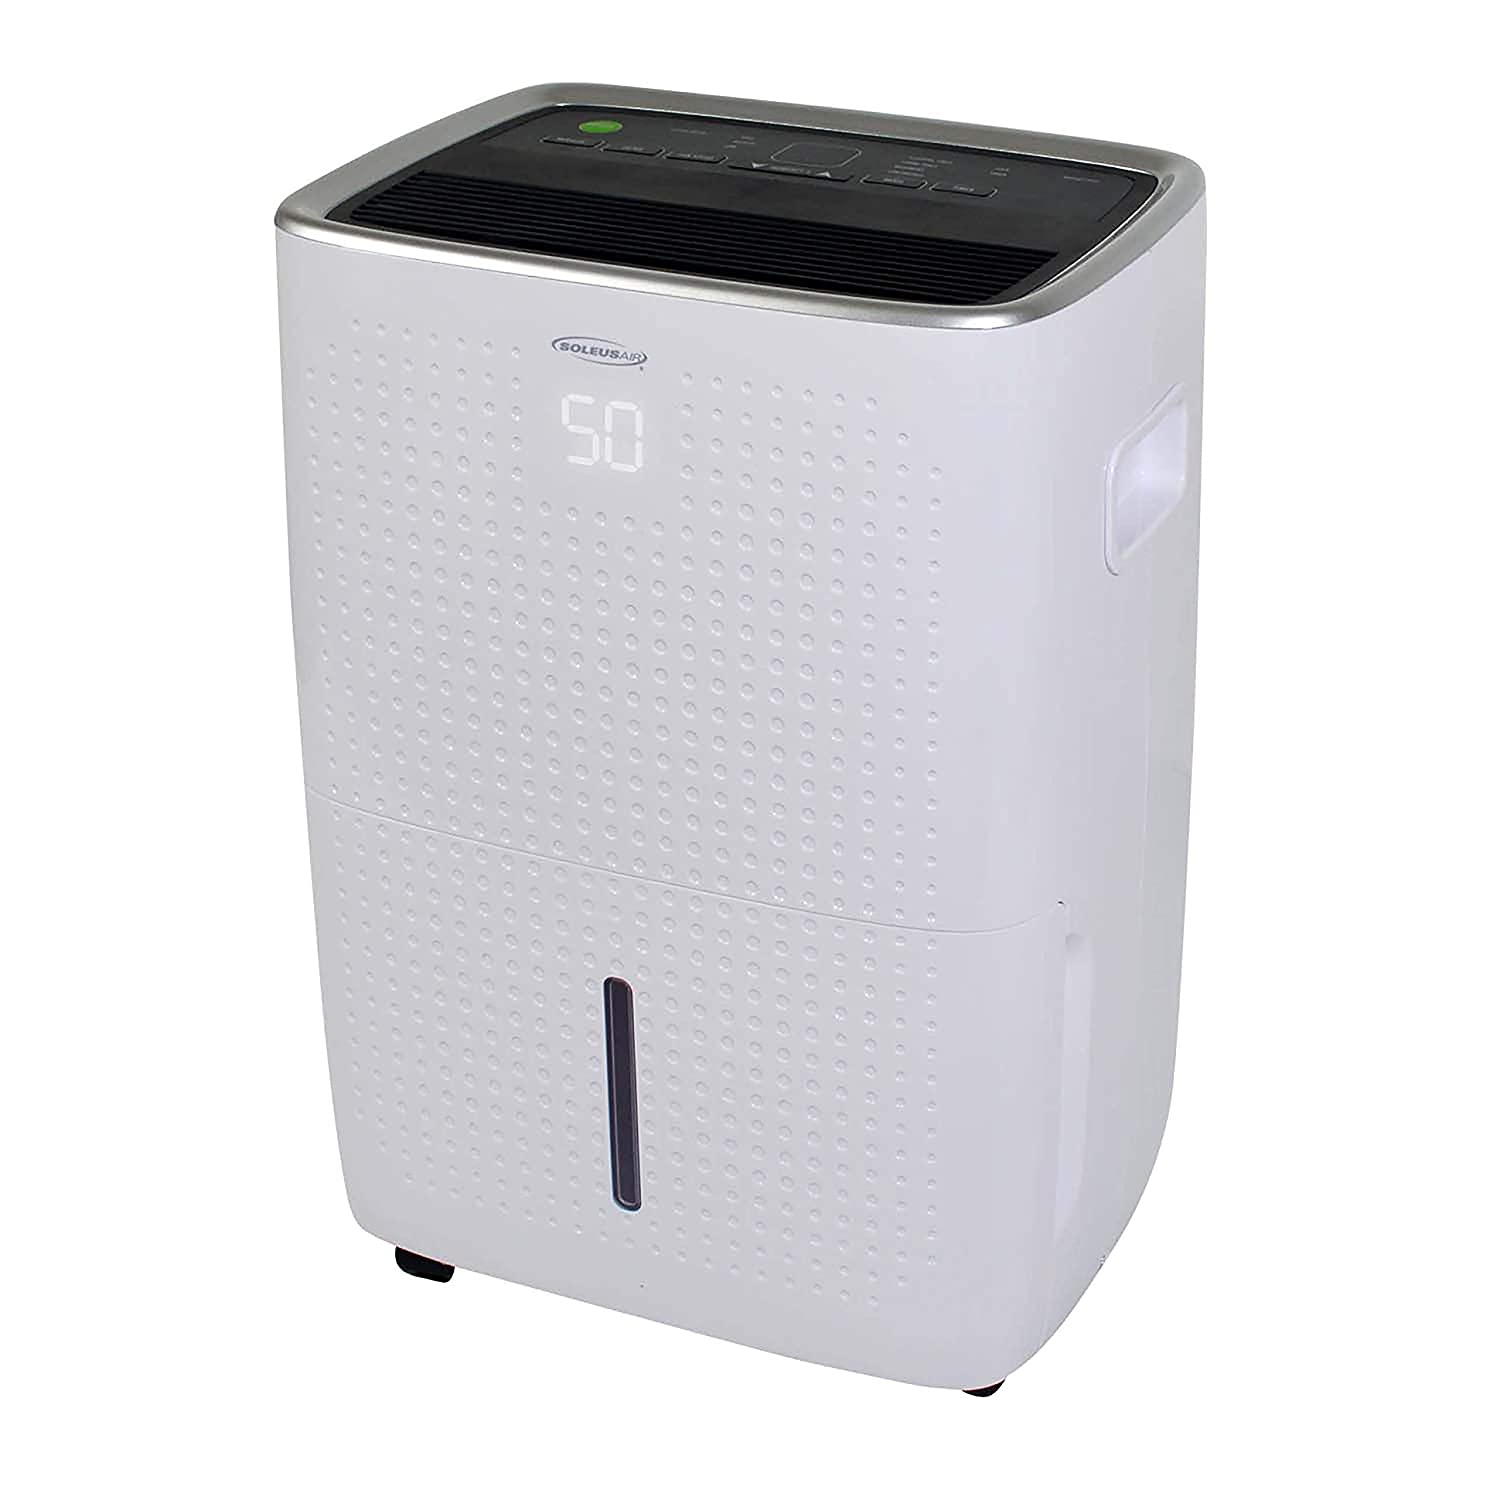 Soleus AC National products 25-Pint 2021 new Energy Star Mirage Dis Dehumidifier with Rated